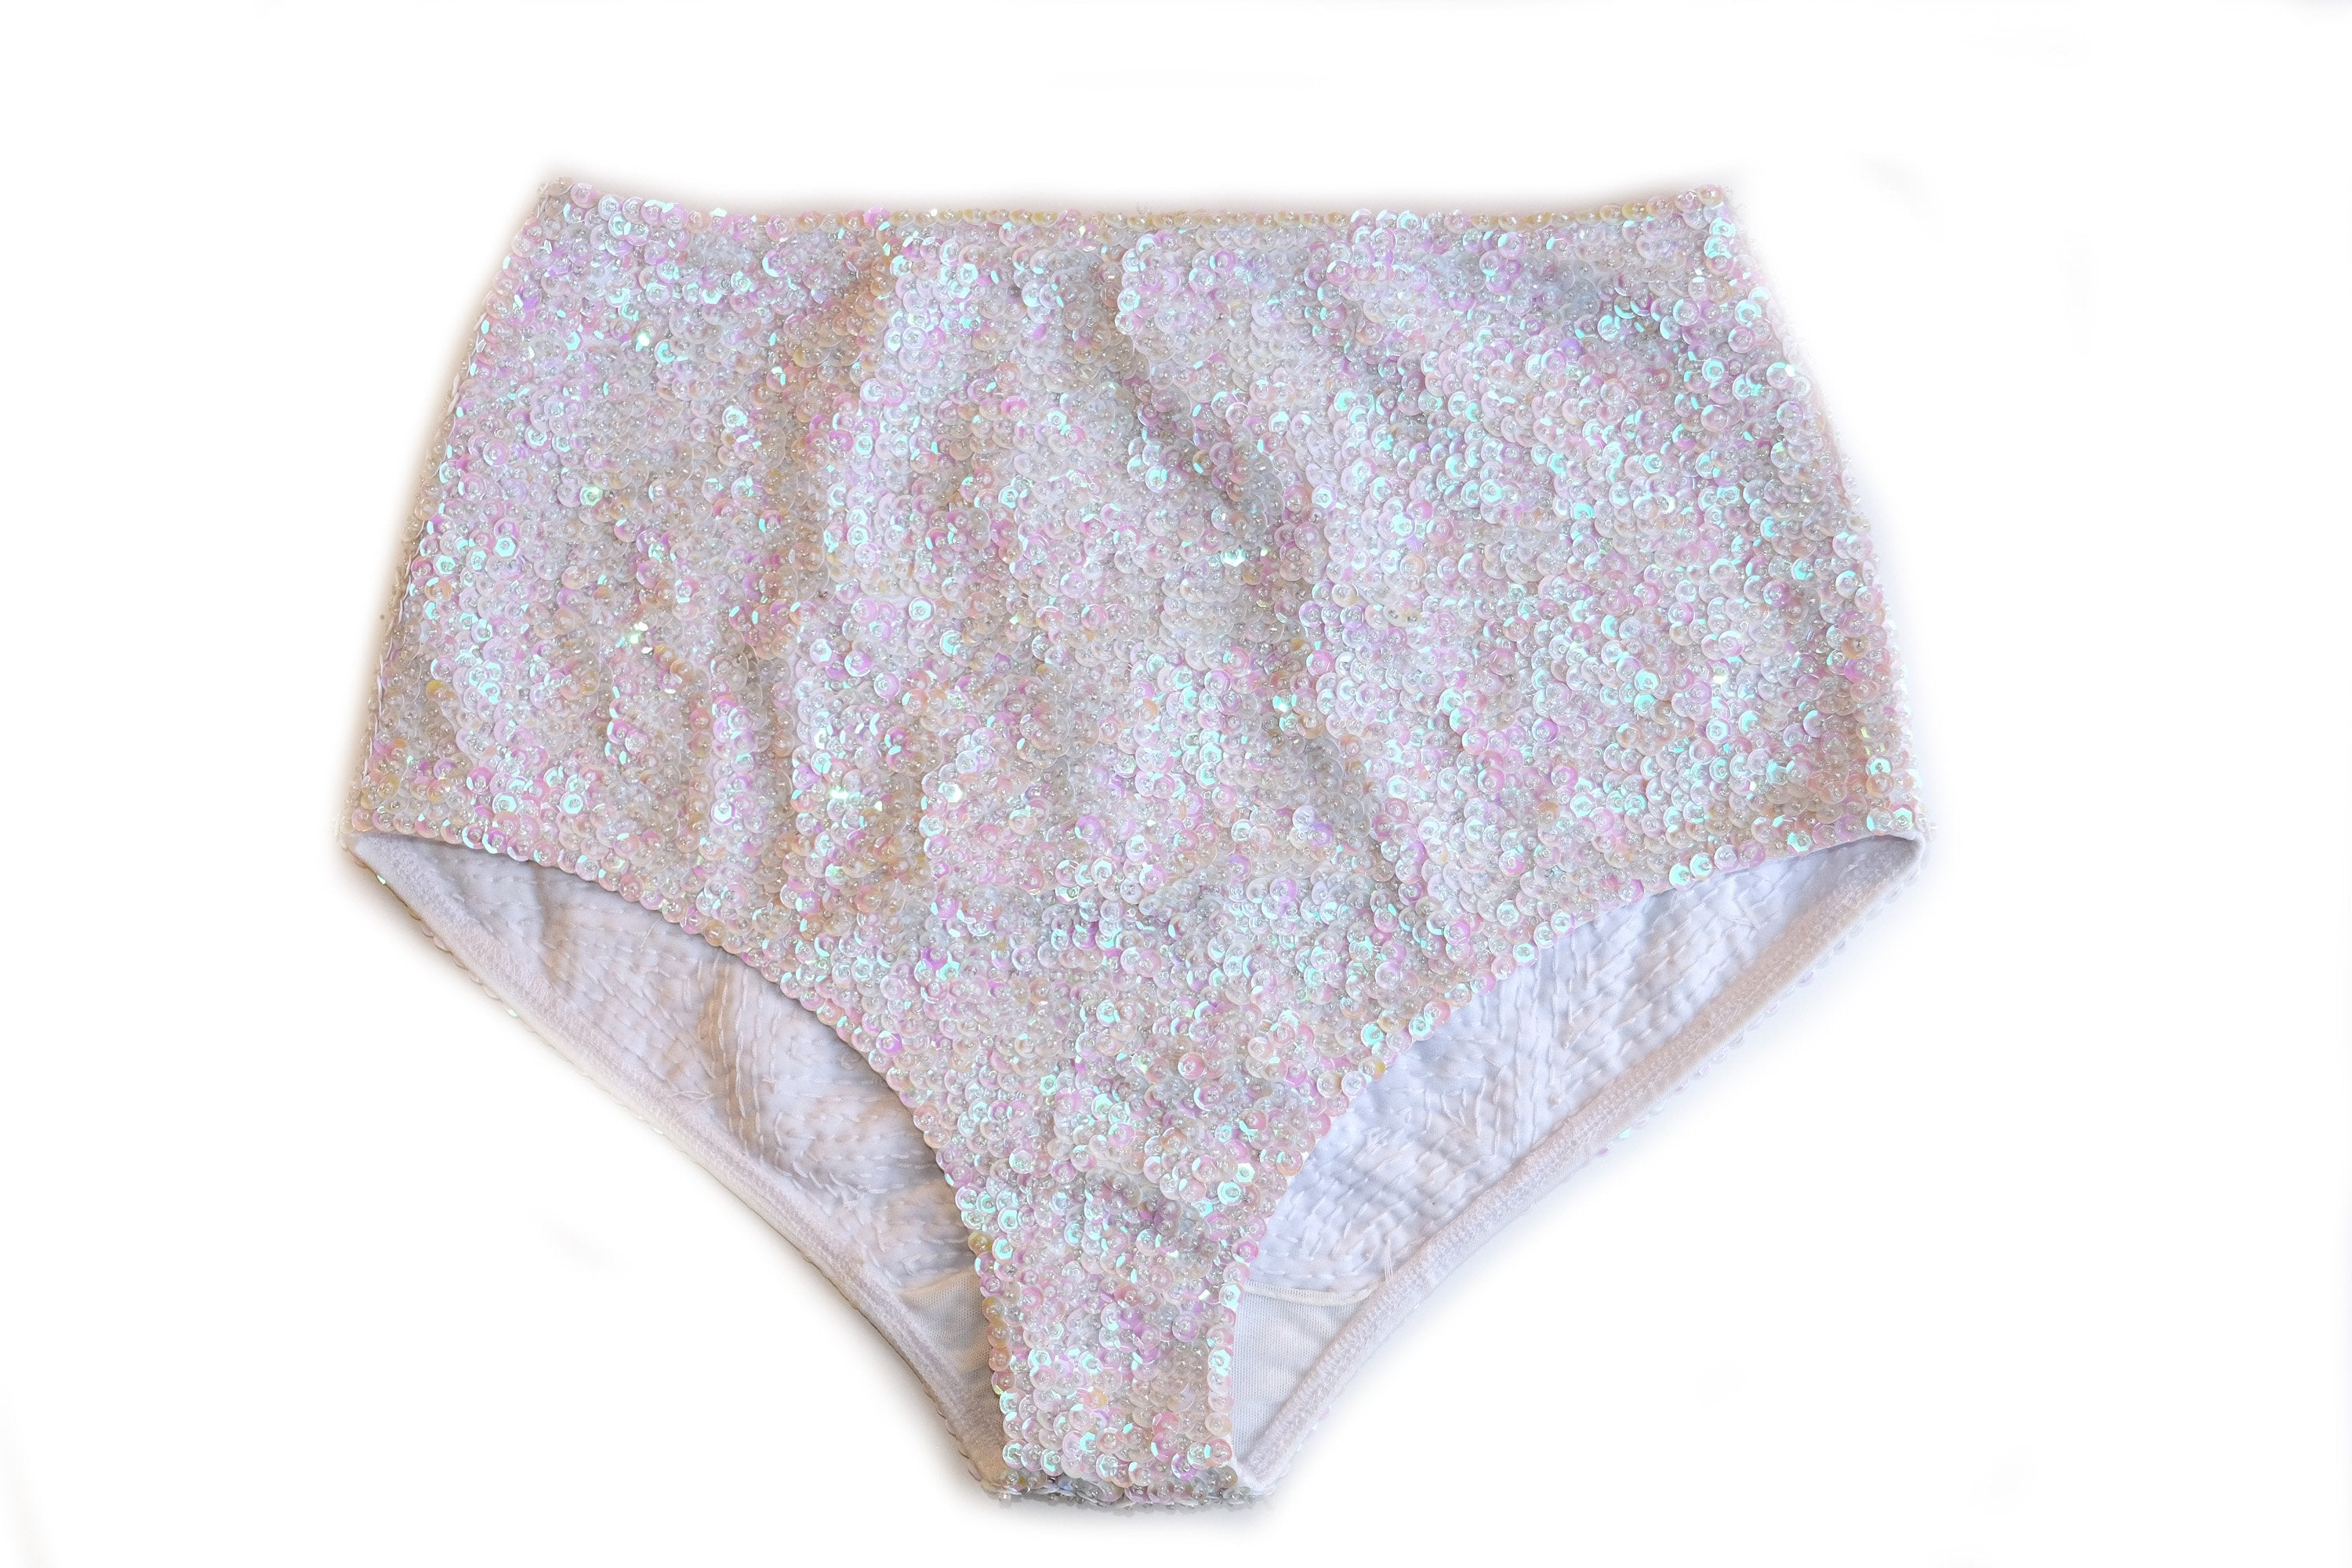 'White' Fully Sequined Bikini Bottoms